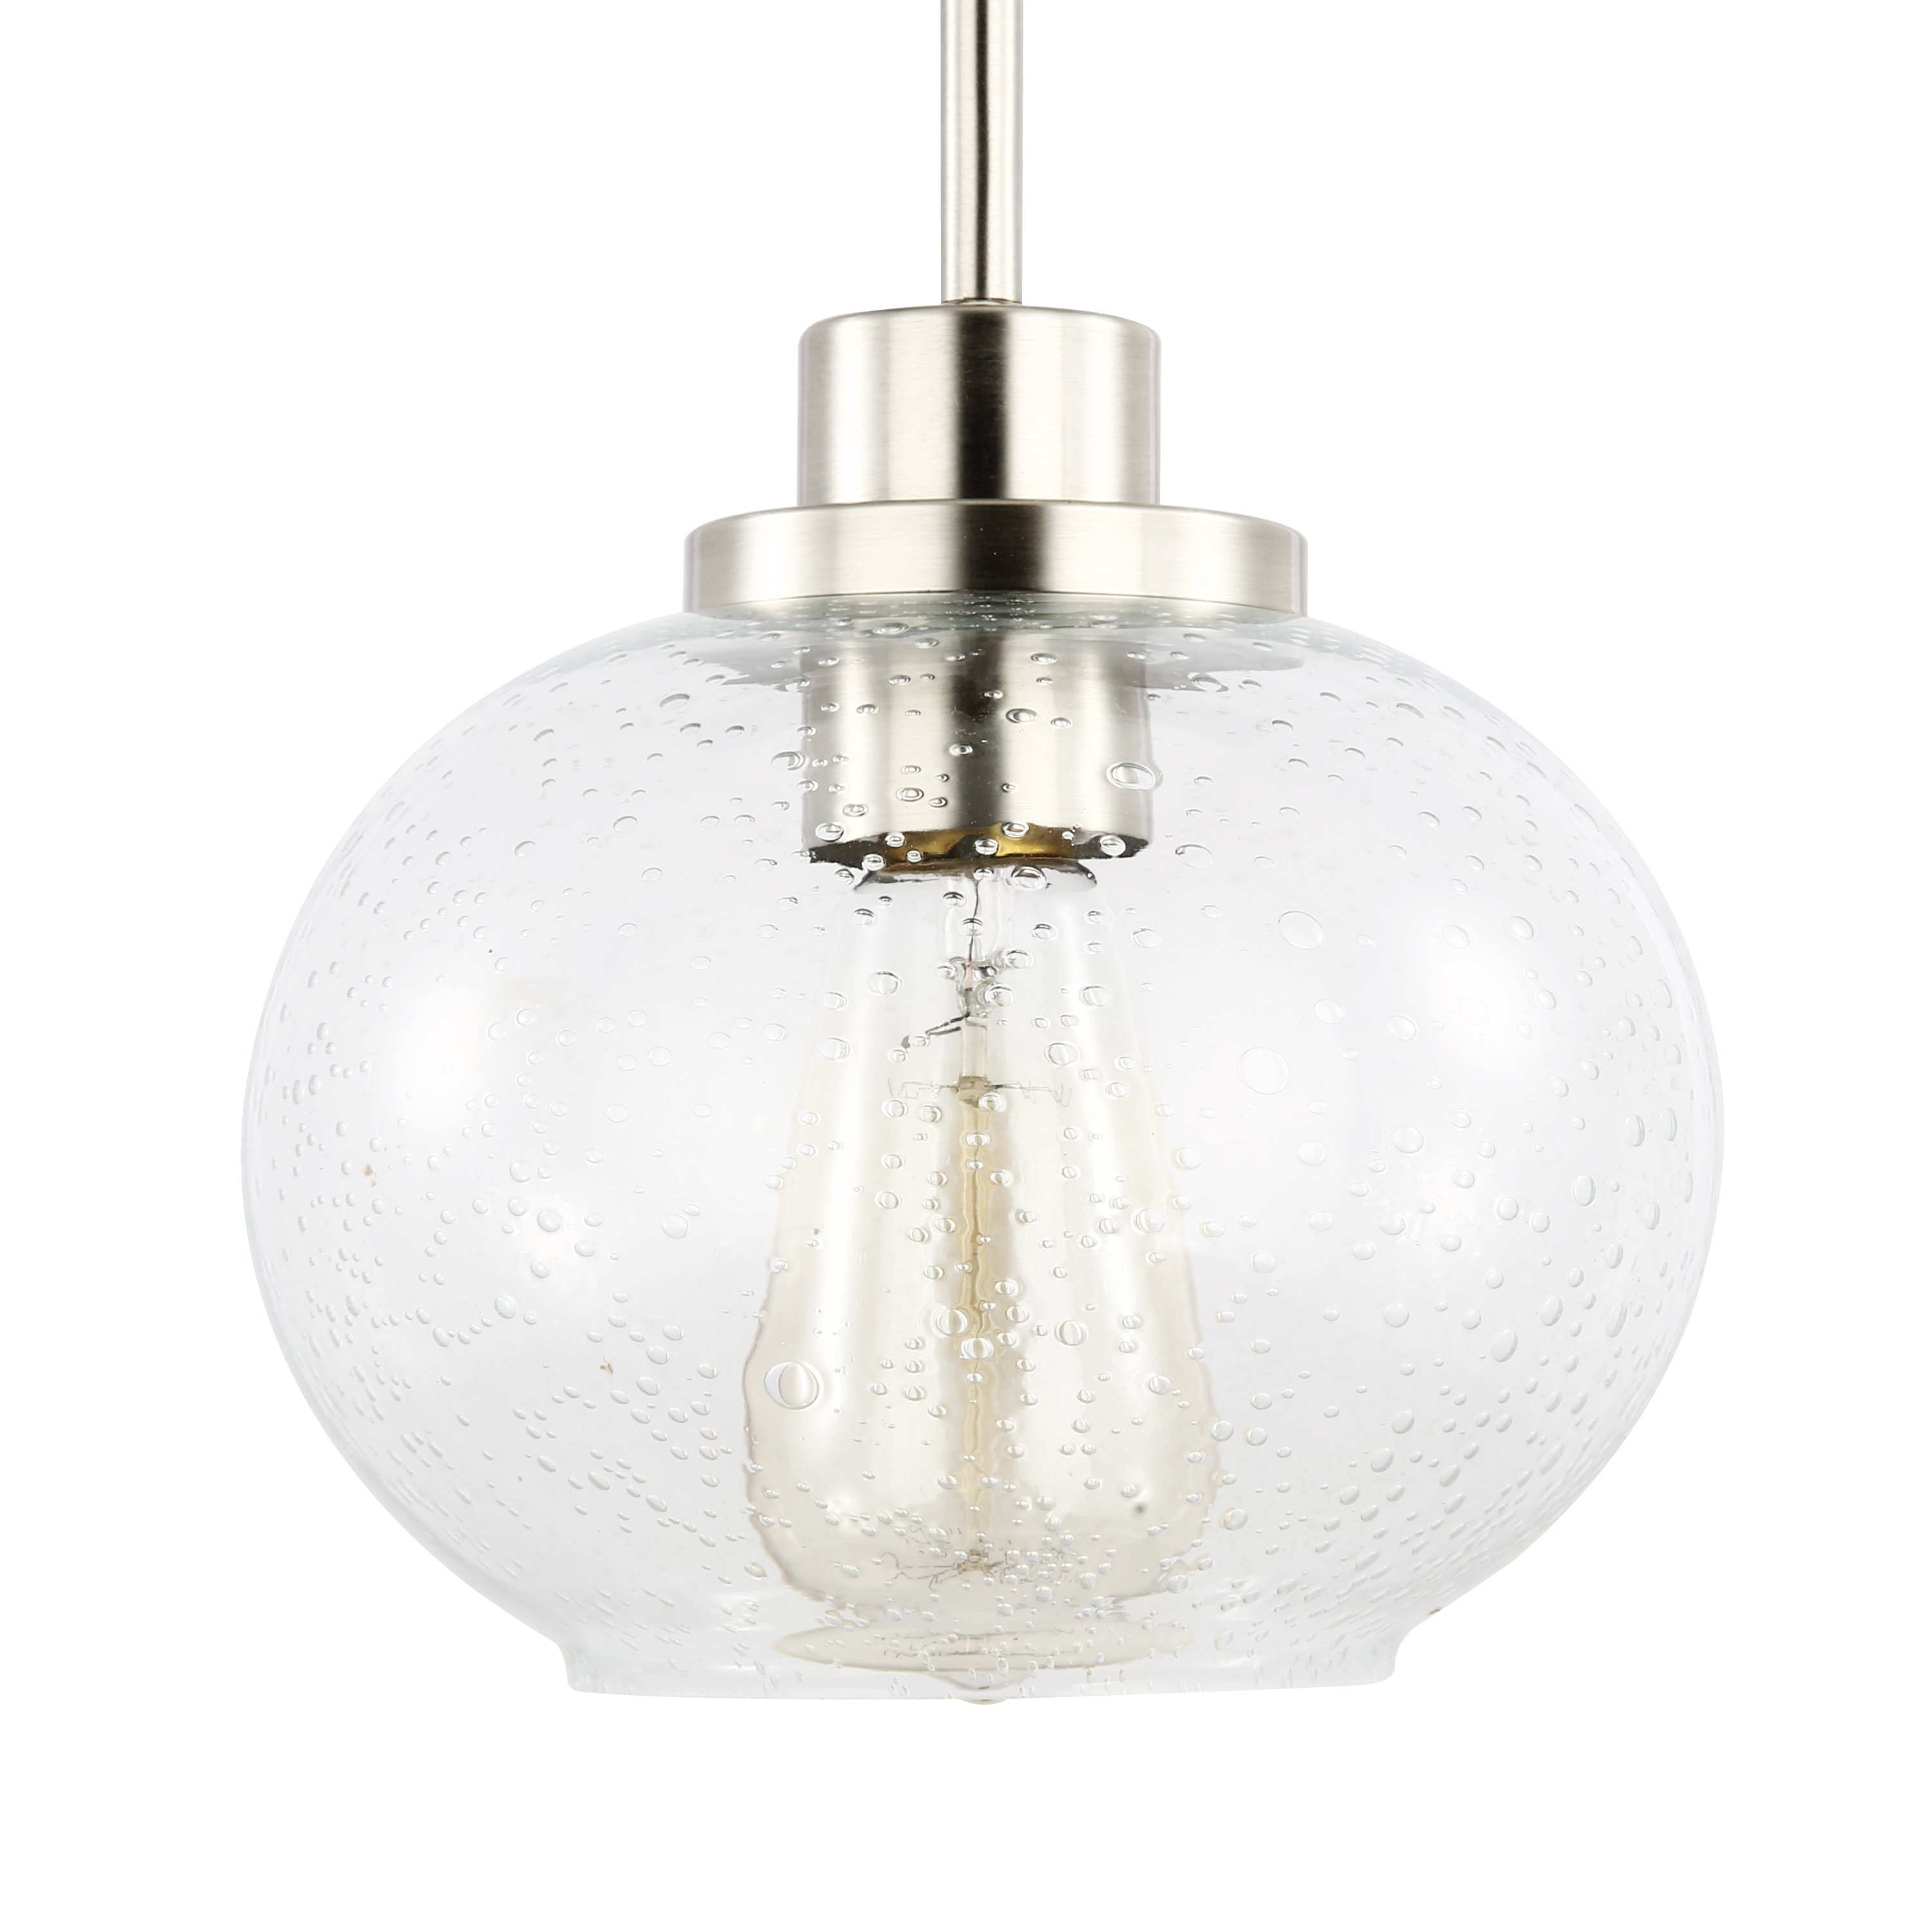 Giacinta 1 Light Single Bell Pendants For Most Up To Date Wiesner 1 Light Globe Pendant (View 13 of 25)